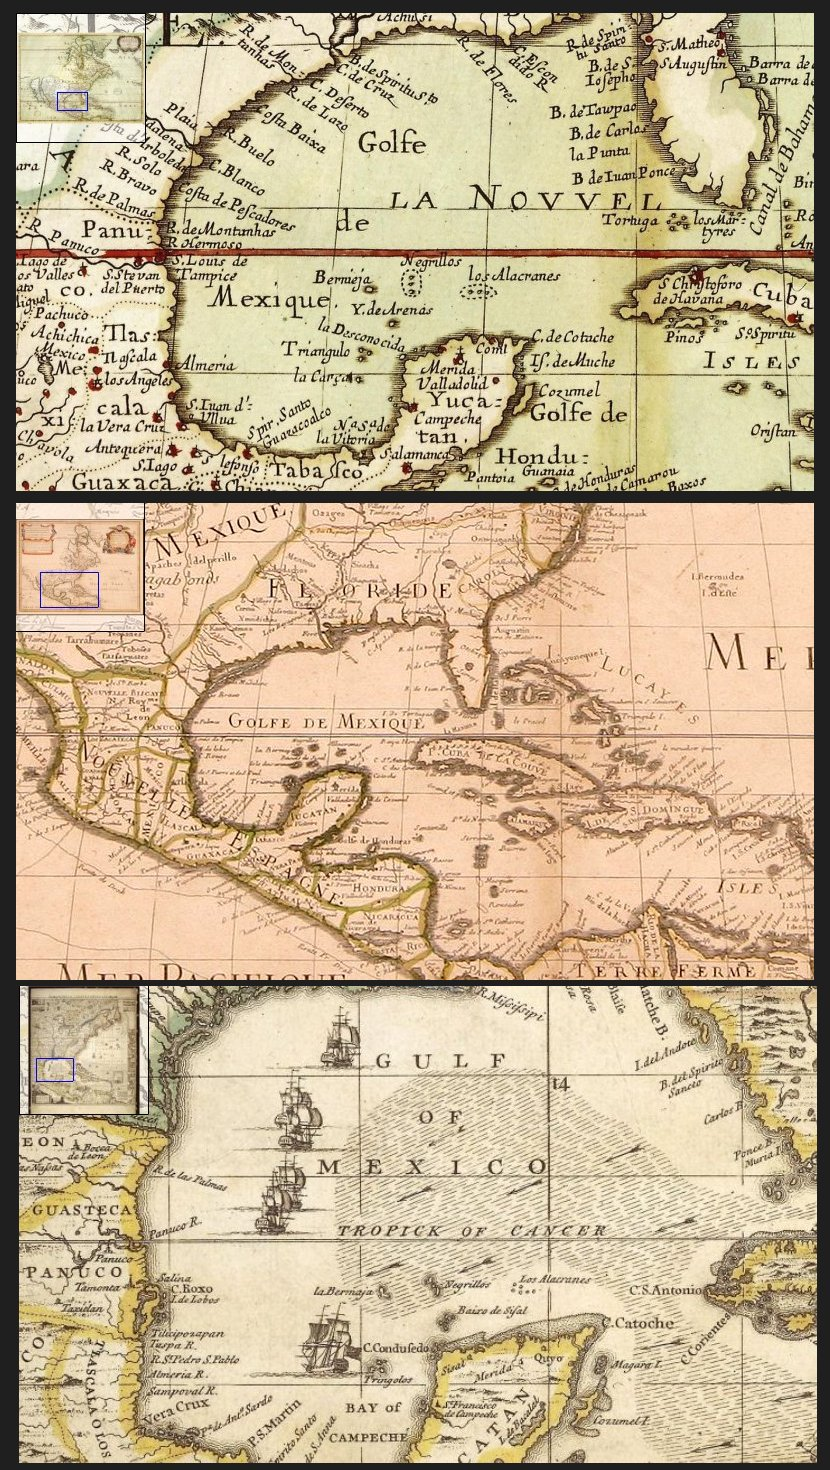 Desde arriba : (1) Popple, Henry, A map of the British empire in America -- (2) Sanson, Nicolas, Amérique septentrionale -- (3) L'Amerique Septentrionale. Dressée sur les Observations de Mrs. de l'Académie Royale des Sciences